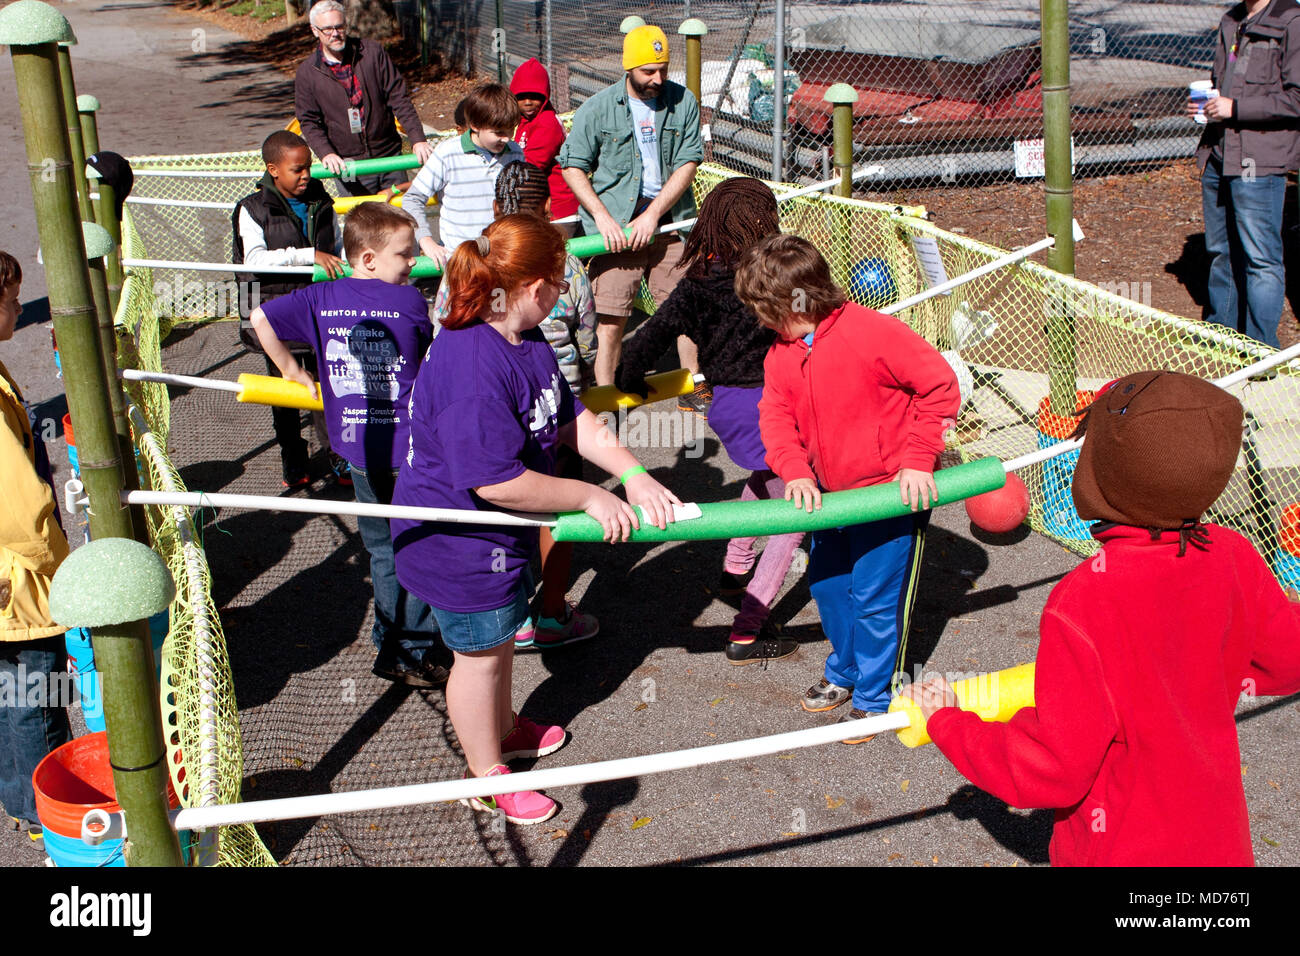 Kids and adults play a game of human foosball at the annual Maker Faire Atlanta, on October 4, 2014 in Decatur, GA. - Stock Image